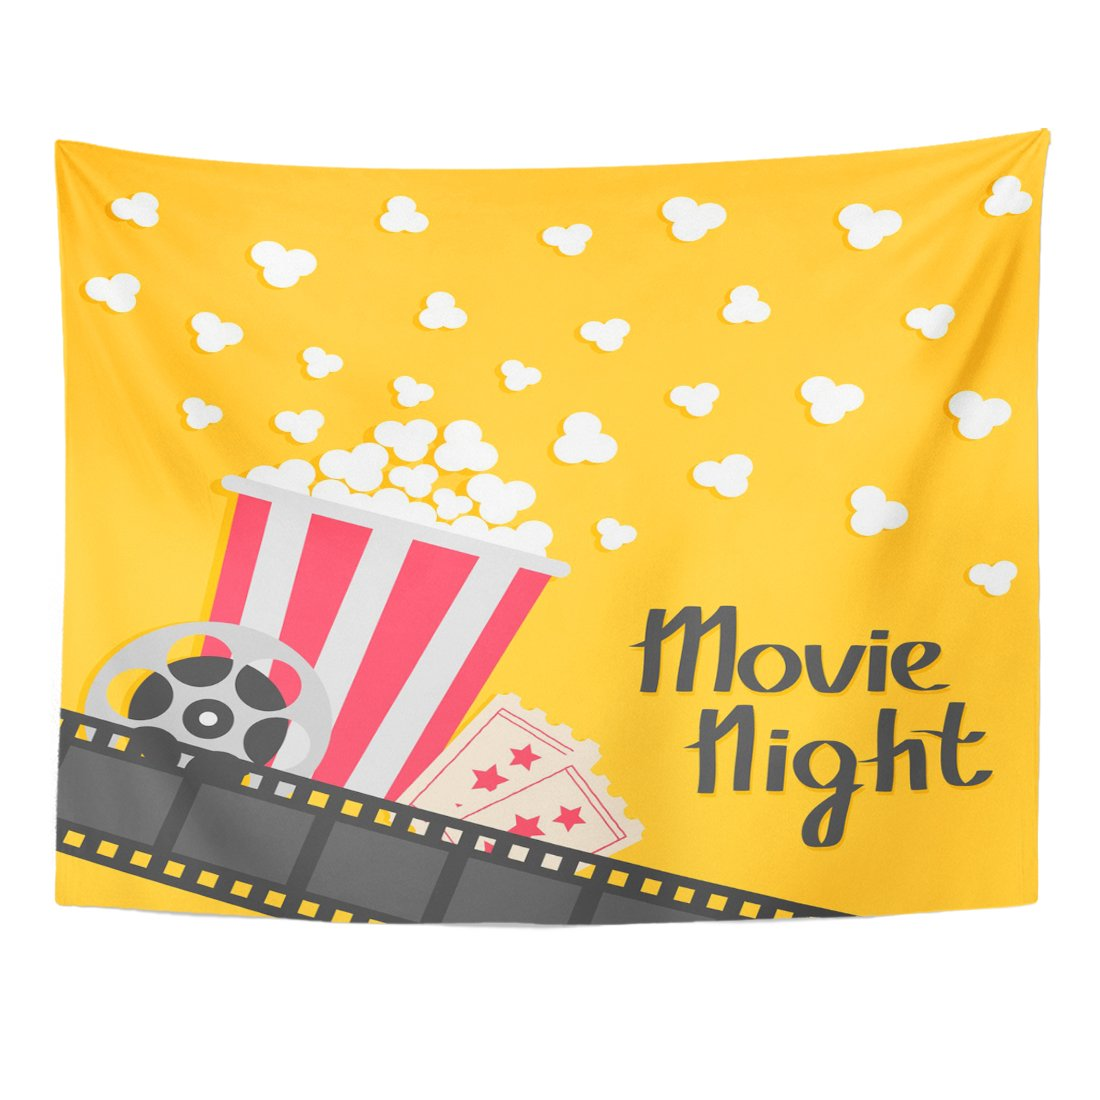 TOMPOP Tapestry Popcorn Popping Big Movie Reel Ticket Admit One Three Star Cinema in Flat Film Strip Border Red Yellow Home Decor Wall Hanging for Living Room Bedroom Dorm 60x80 Inches